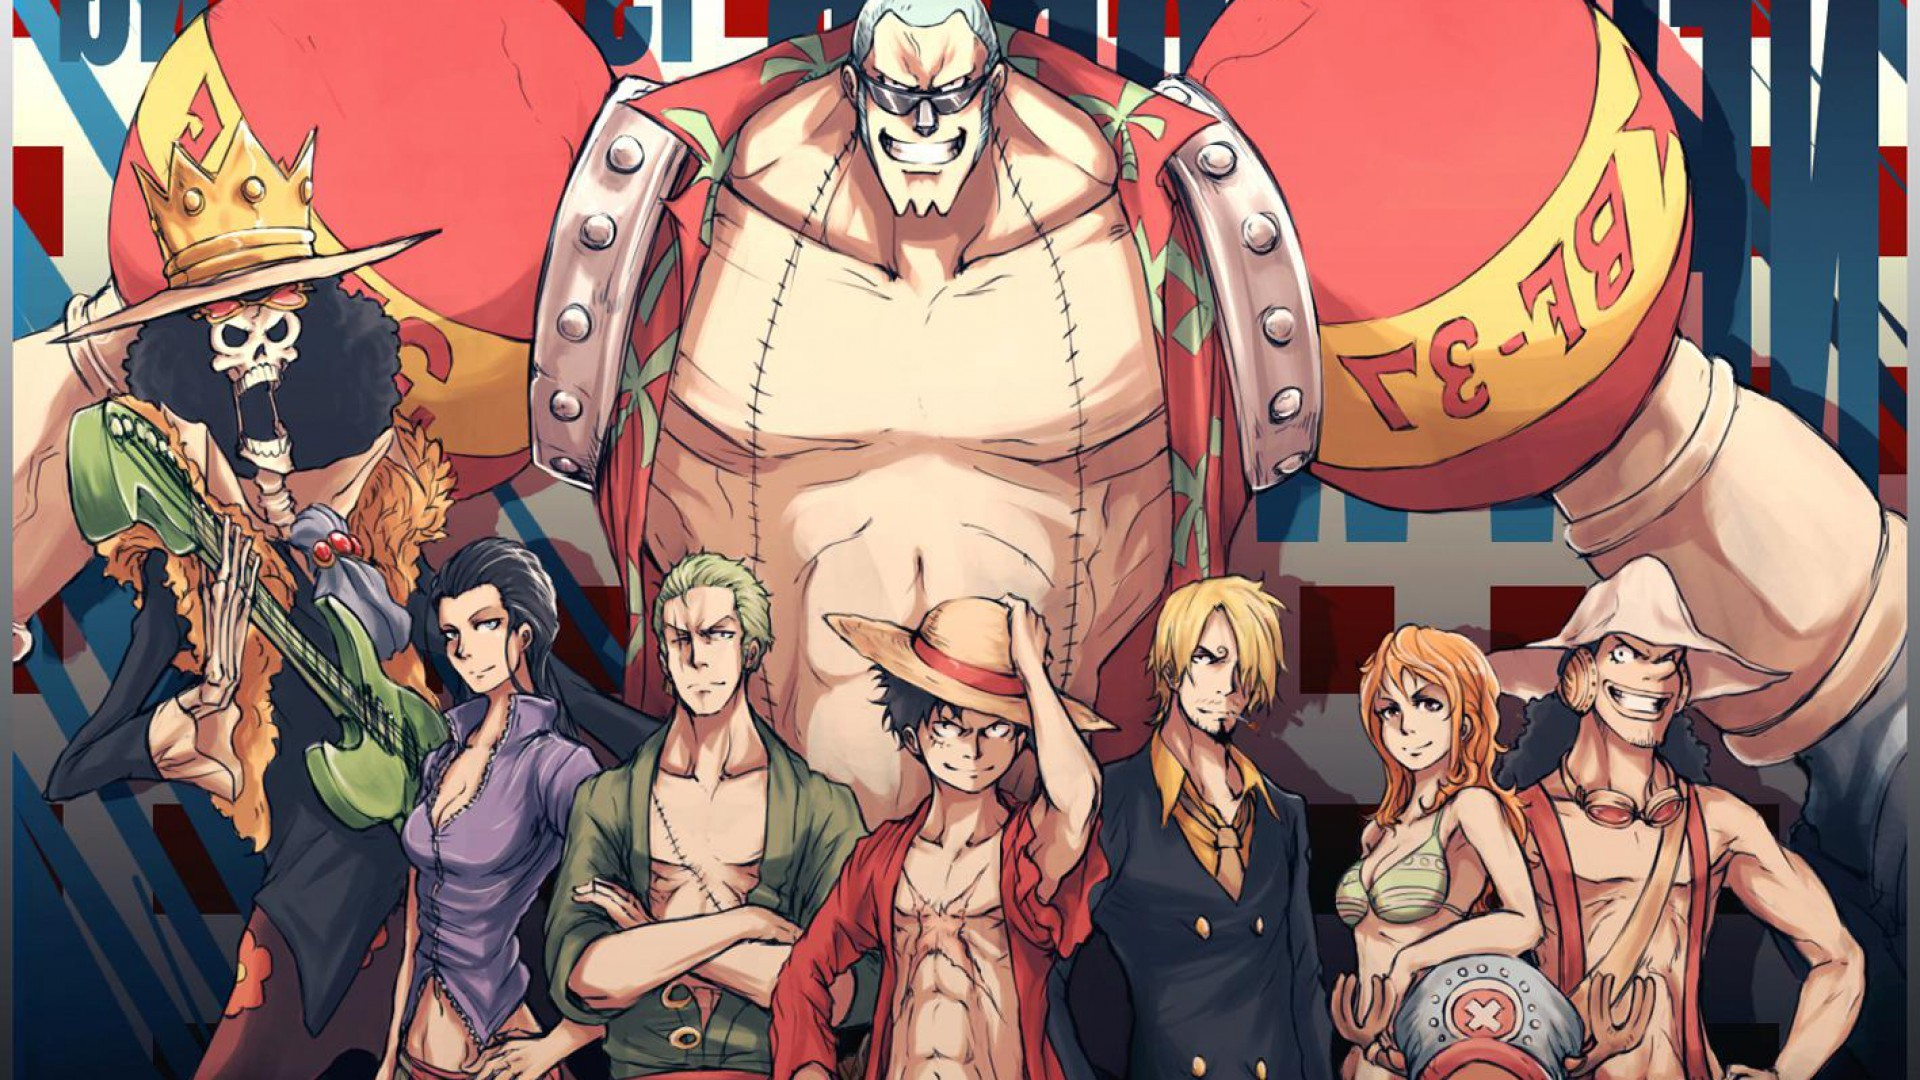 80+ one piece wallpapers on wallpaperplay